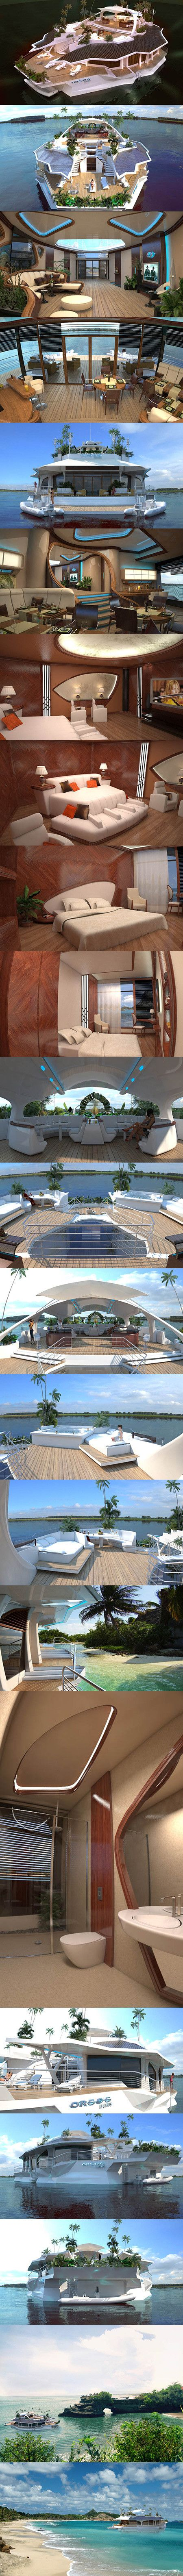 Orsos Islands Is A Luxury Floating Island That Has The Ability To Be Gorgeous Orsos Island Orsos